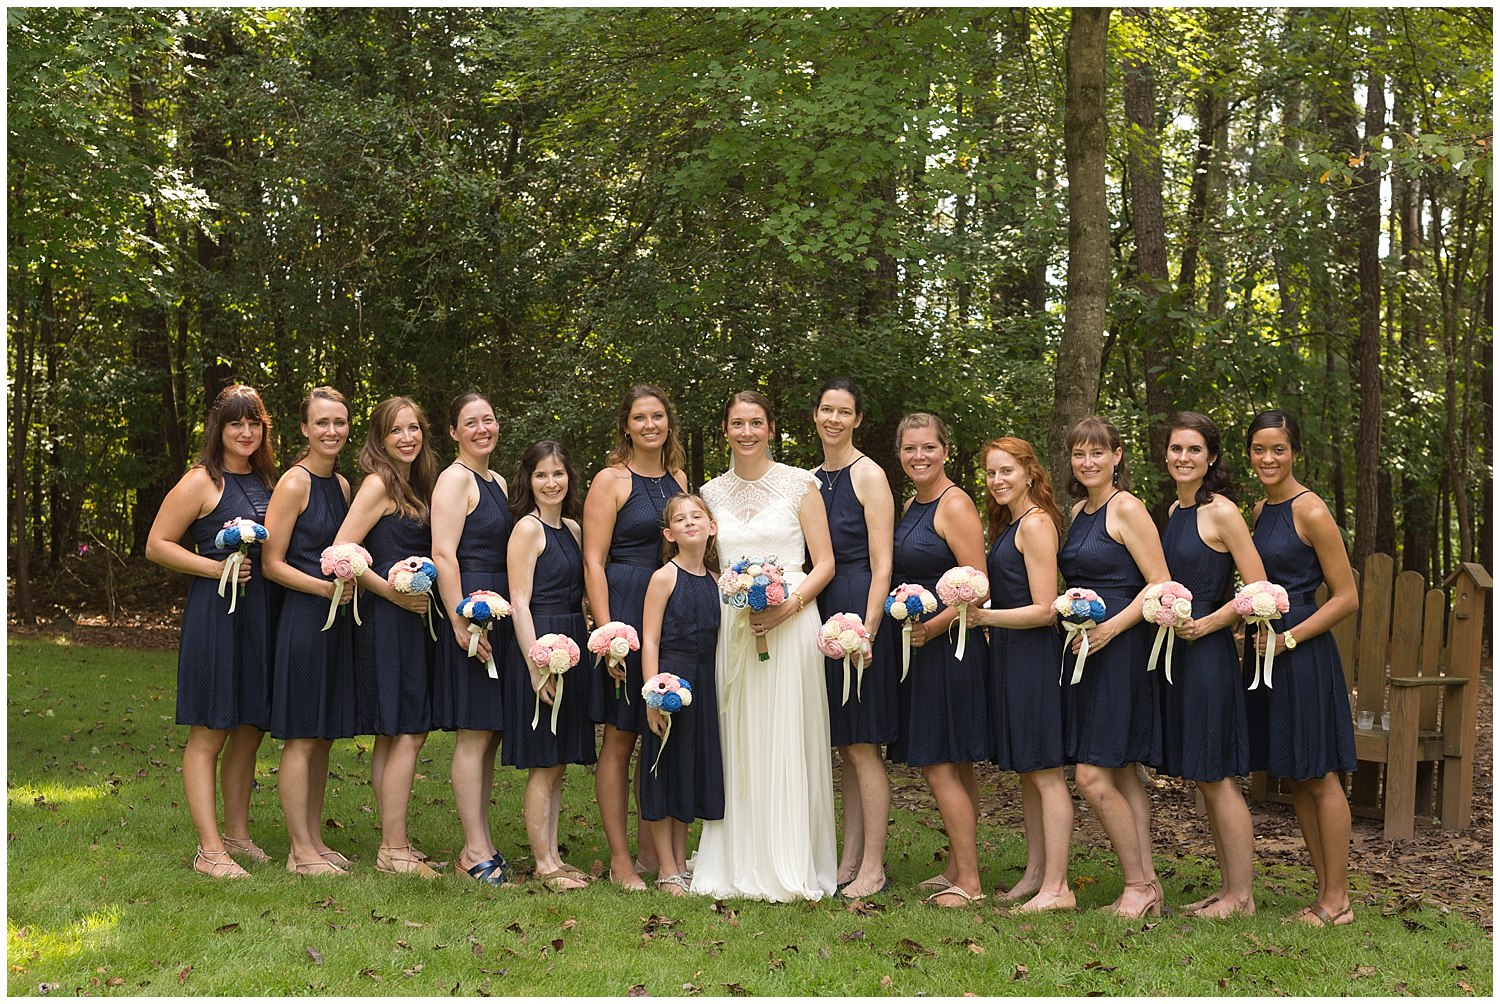 bridesmaids with navy blue dresses and pink bouquets